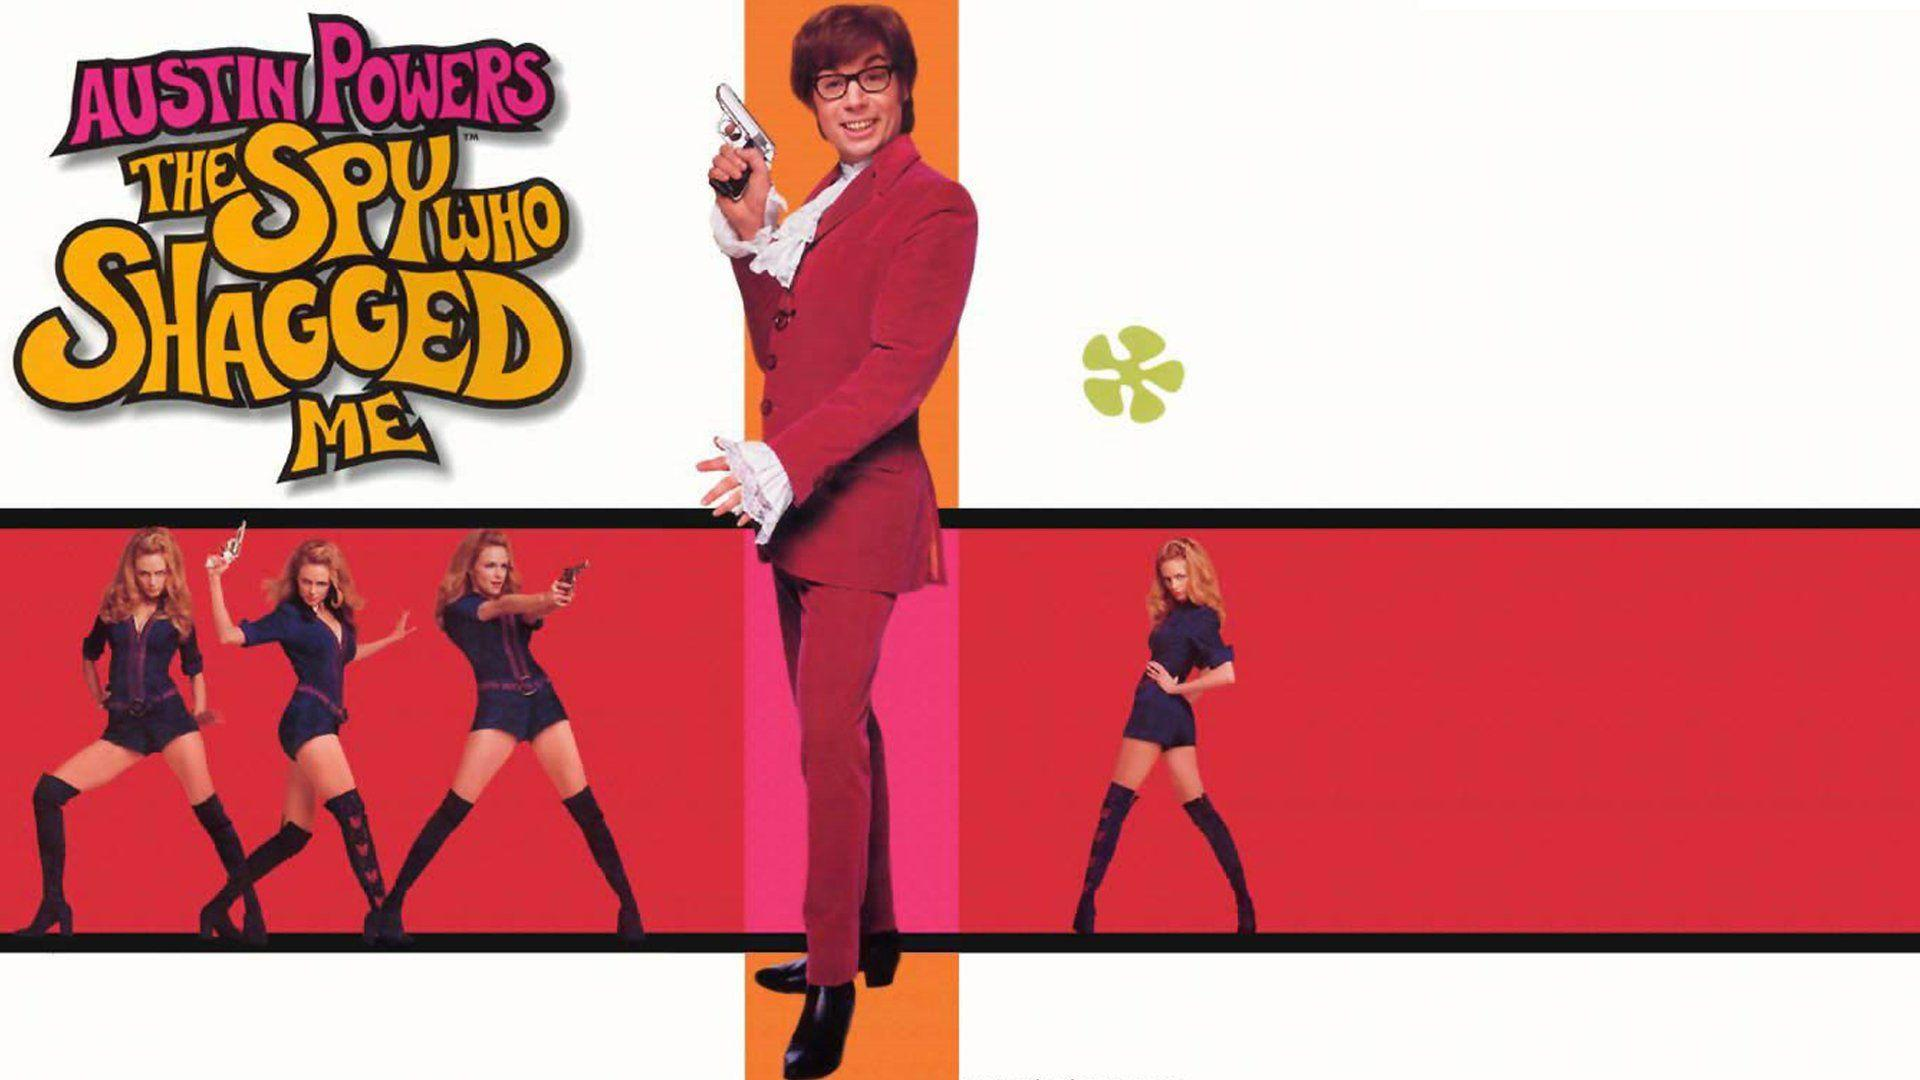 Austin Powers The Spy Who Shagged Me Soundtrack